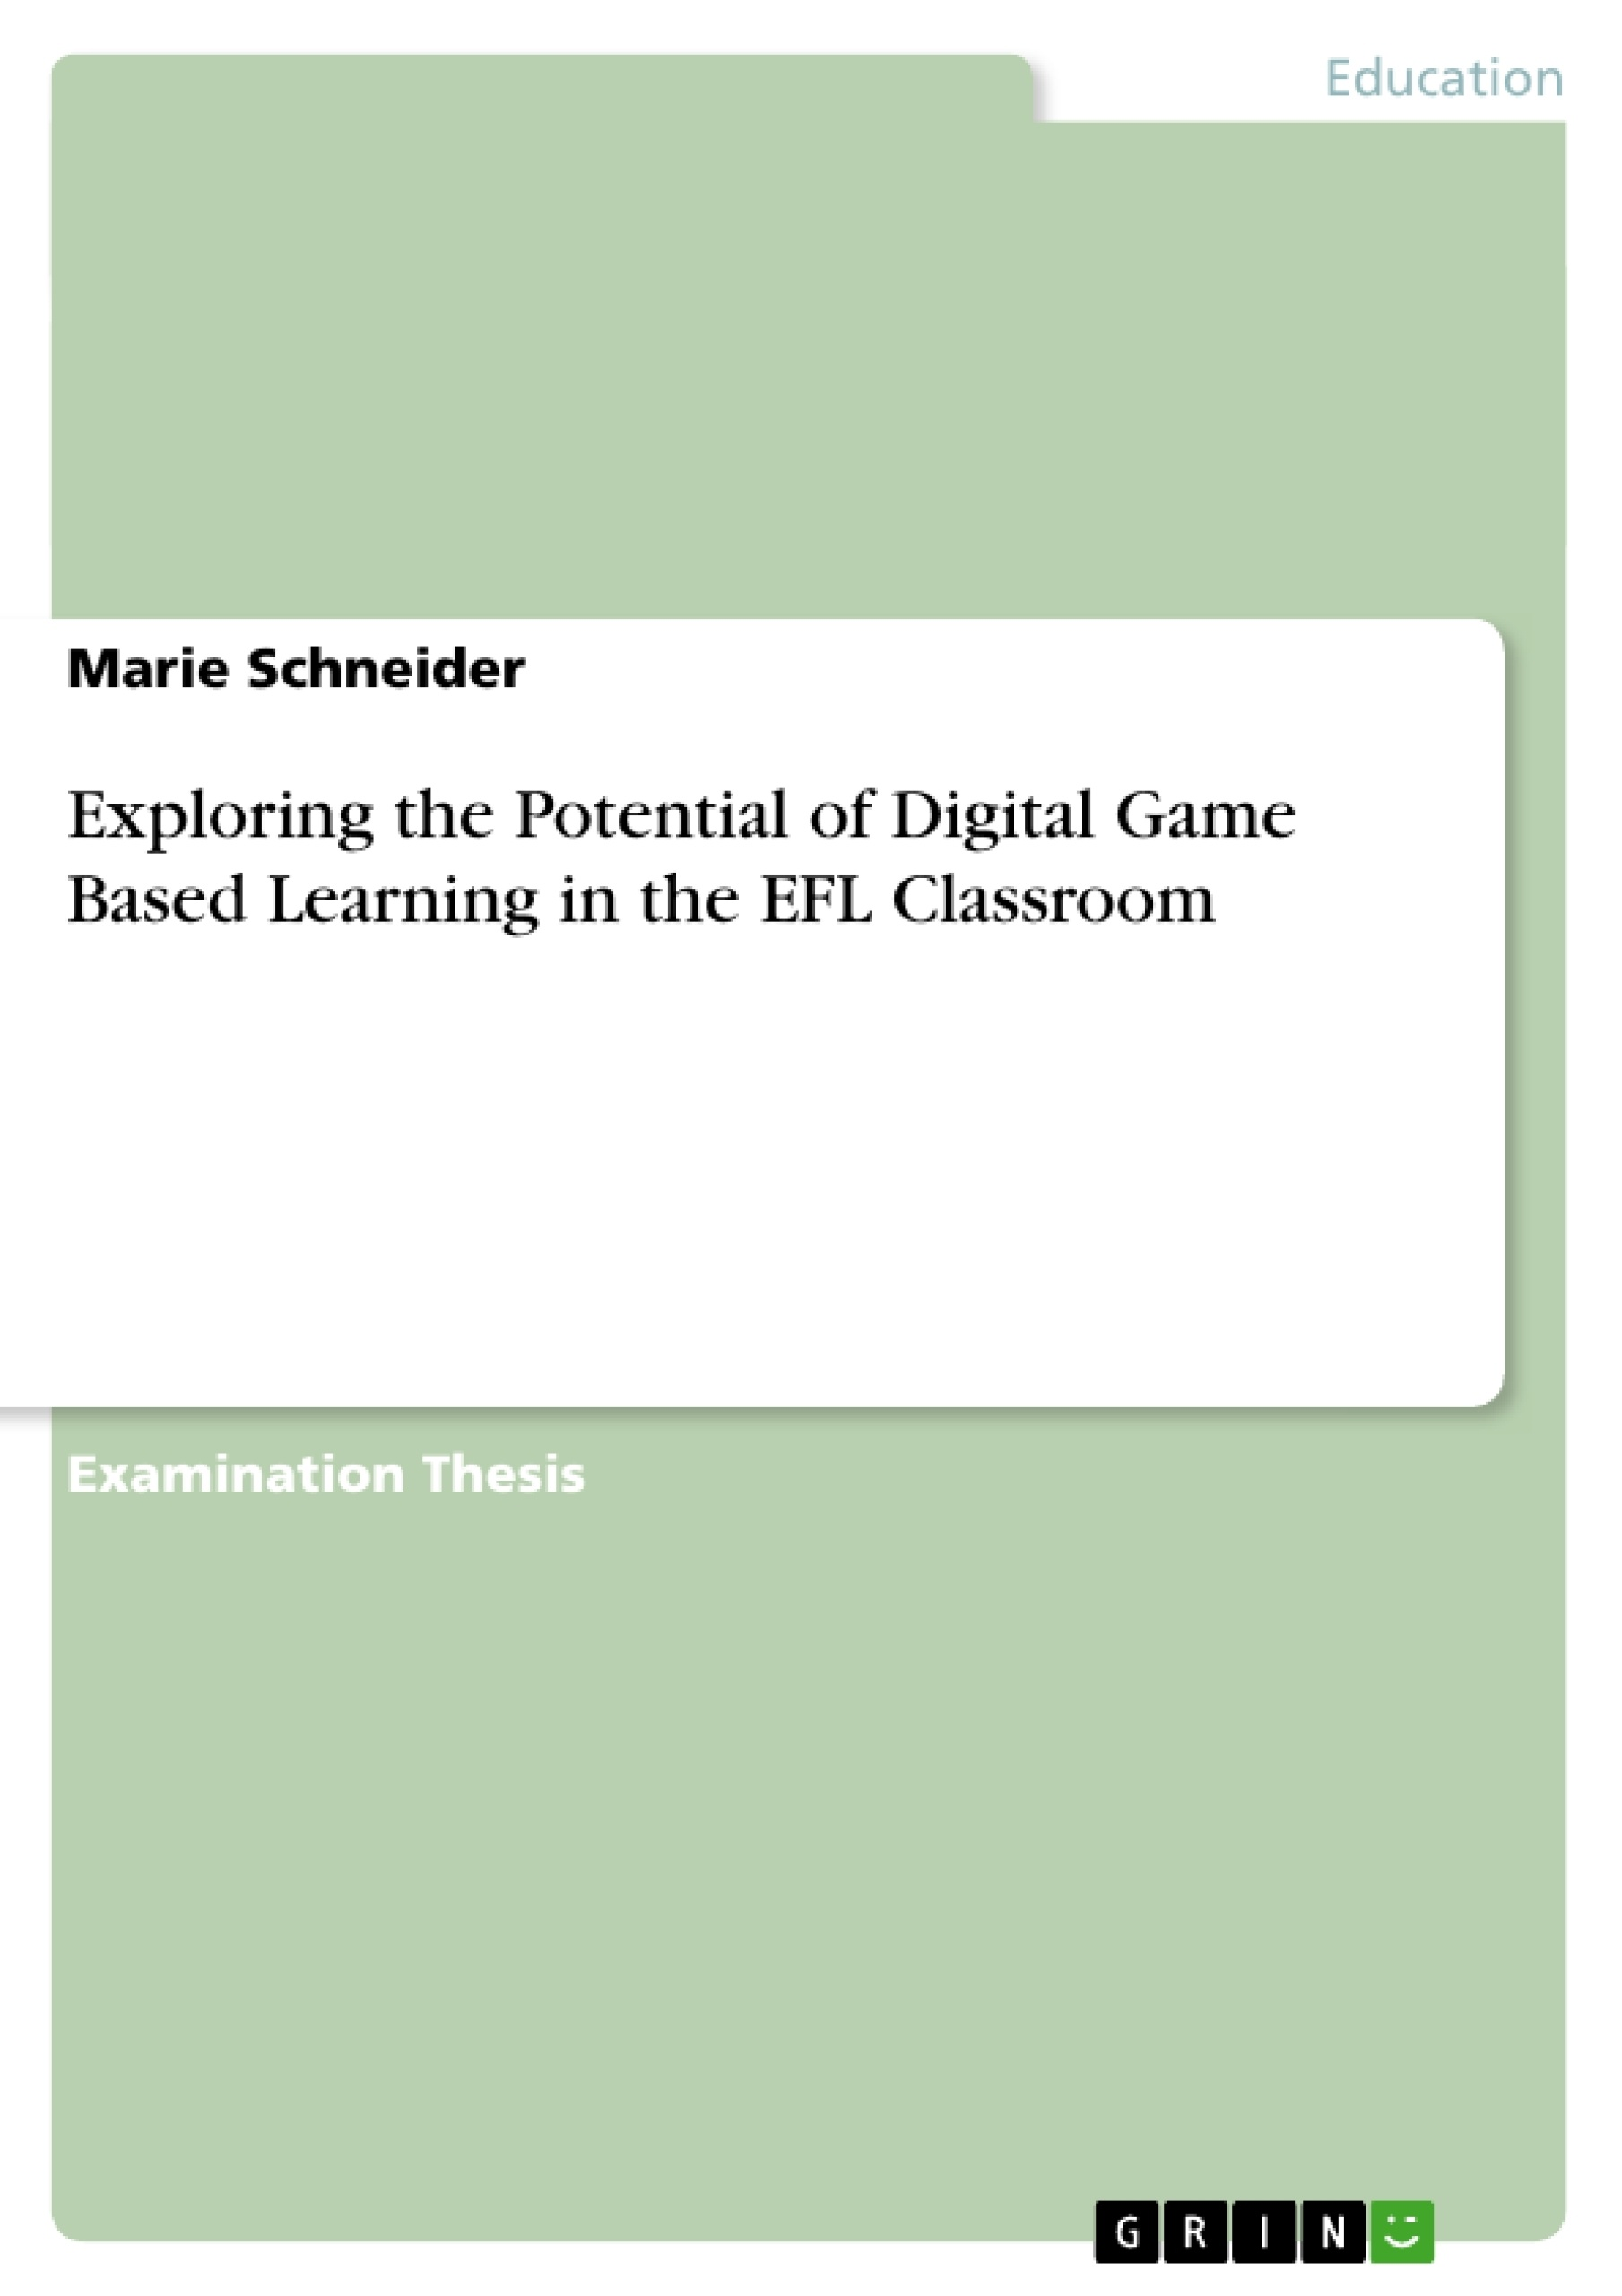 Title: Exploring the Potential of Digital Game Based Learning in the EFL Classroom